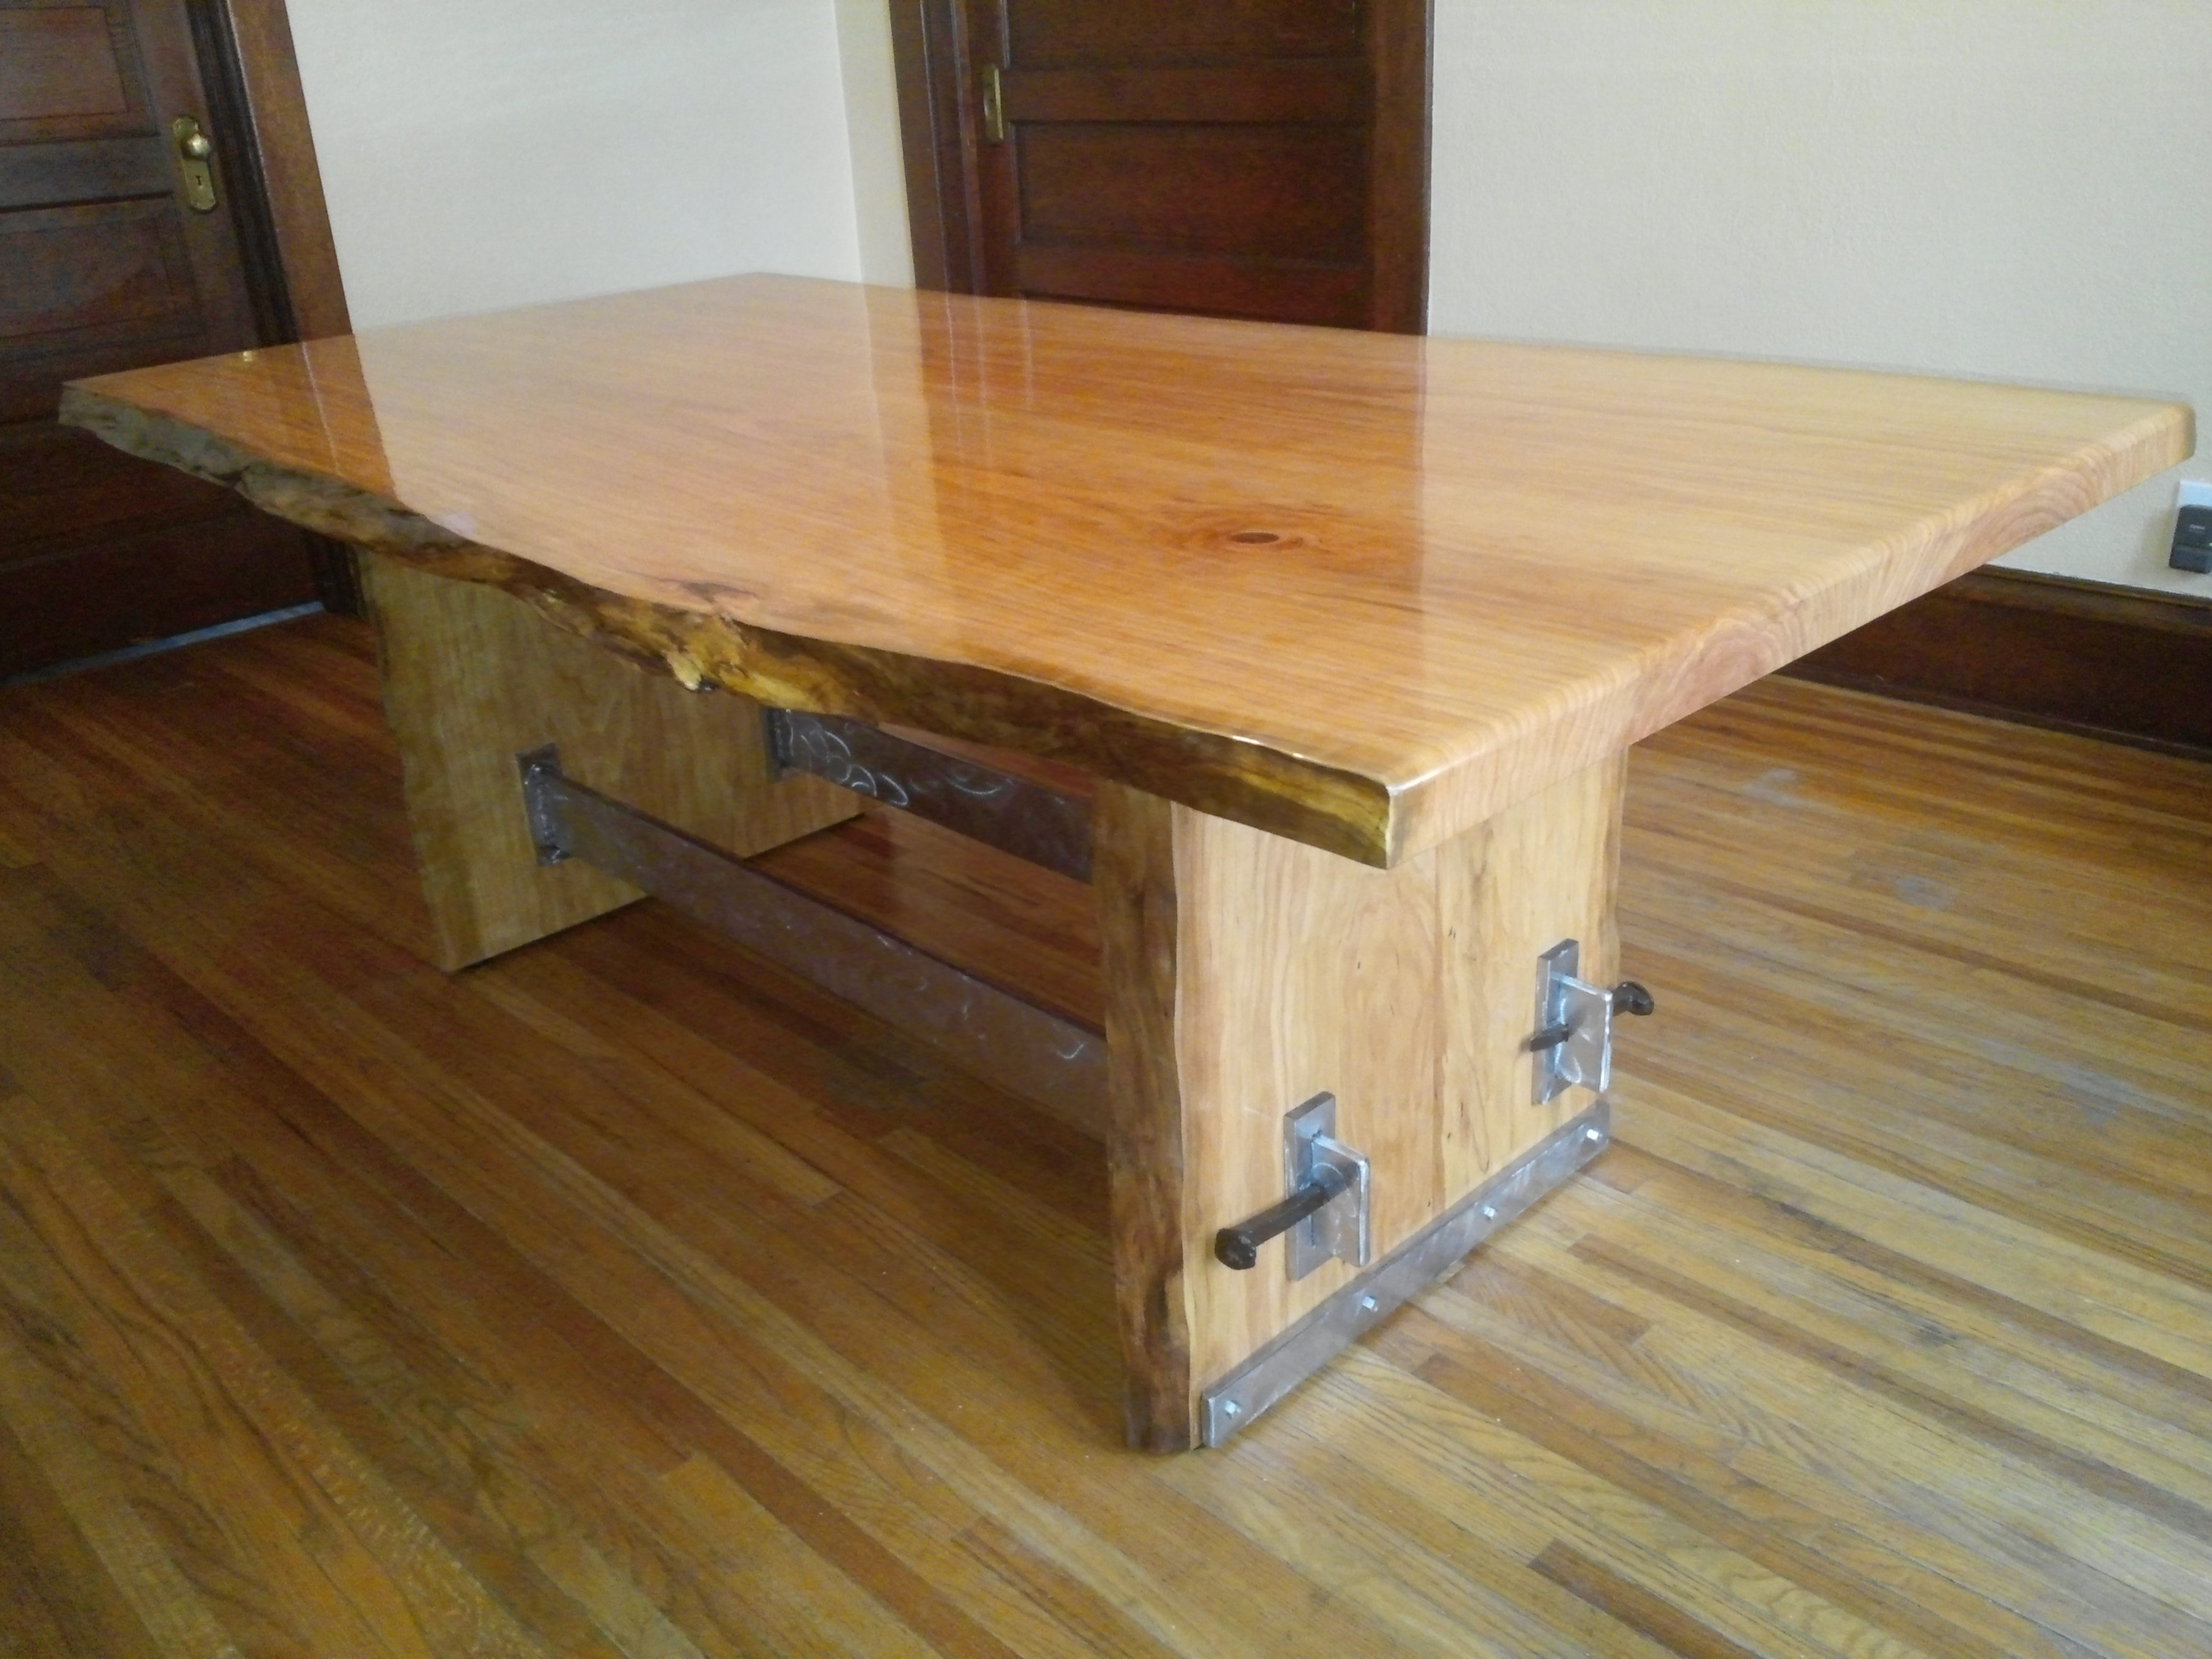 Furniture stores great falls mt - Live Edge Cherry Table Good Wood Guys Online